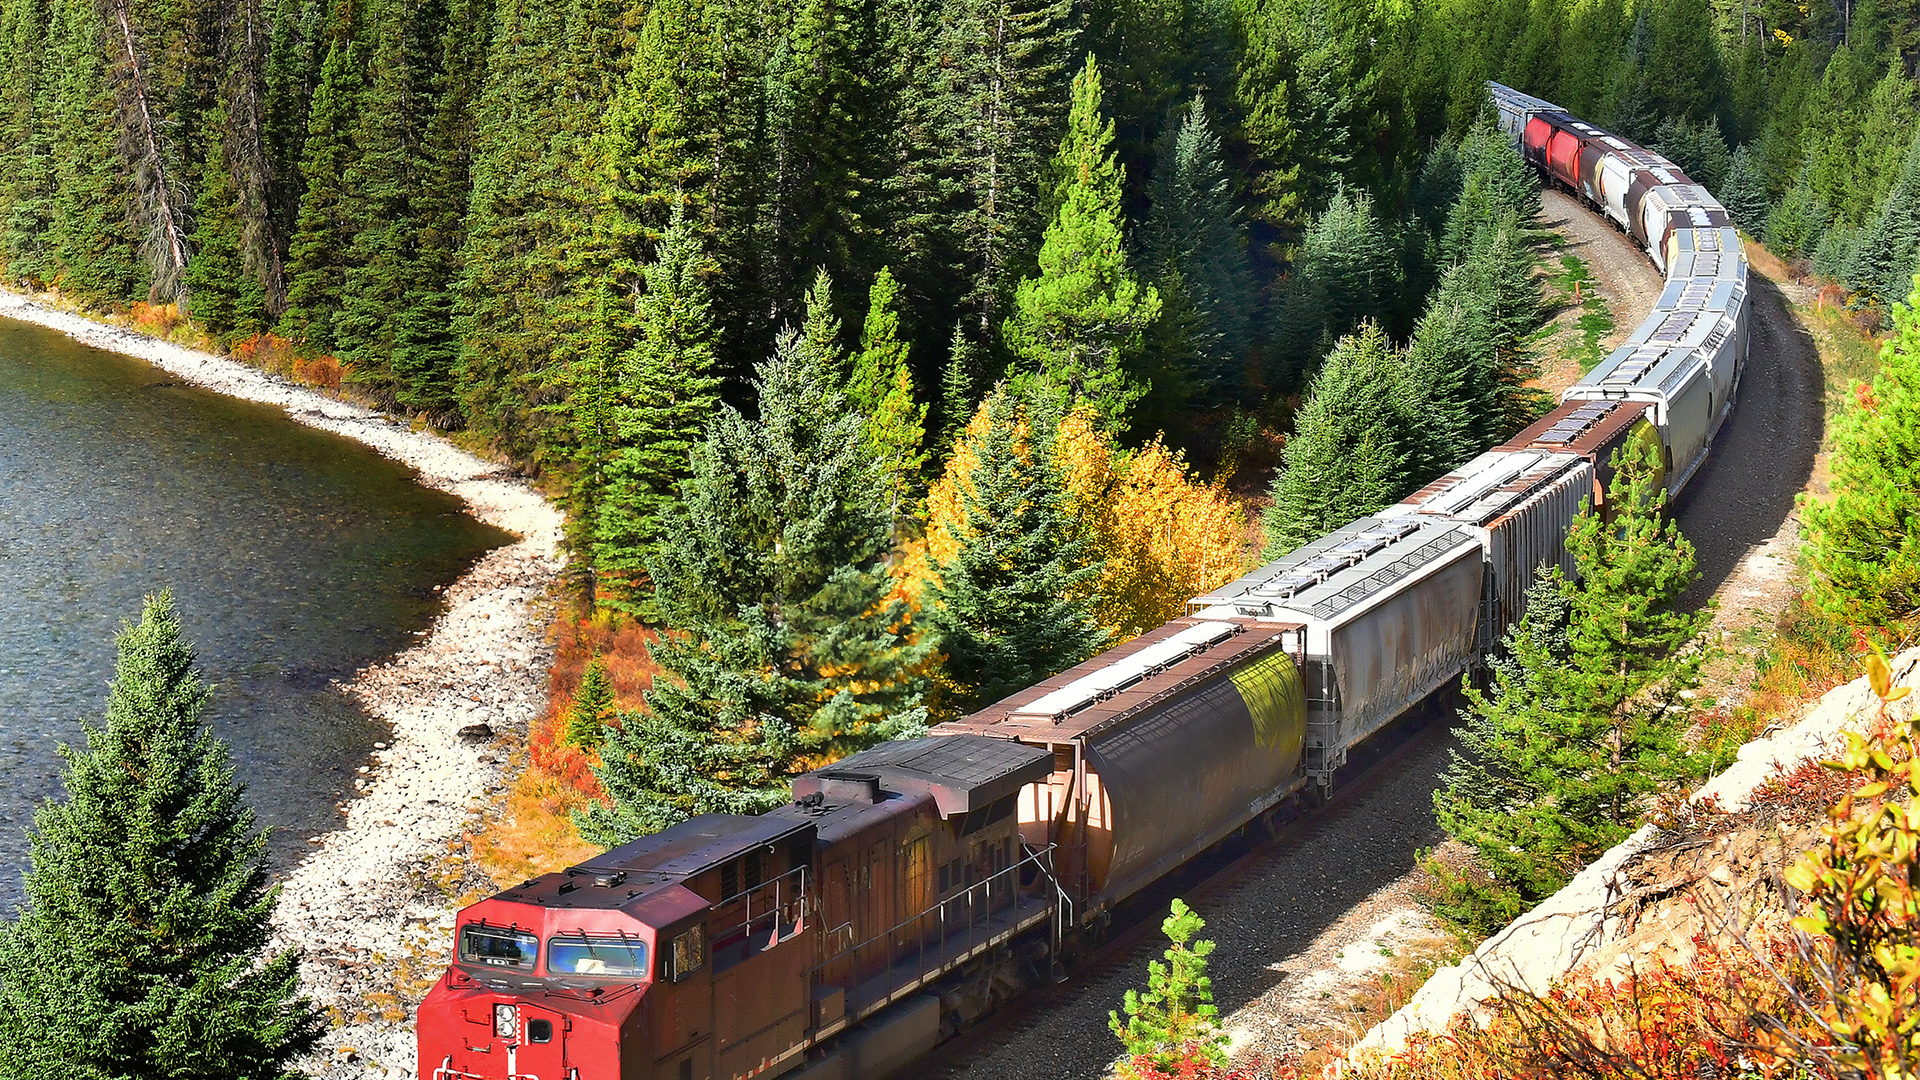 A train passing through the Canadian Rockies in Banff National Park